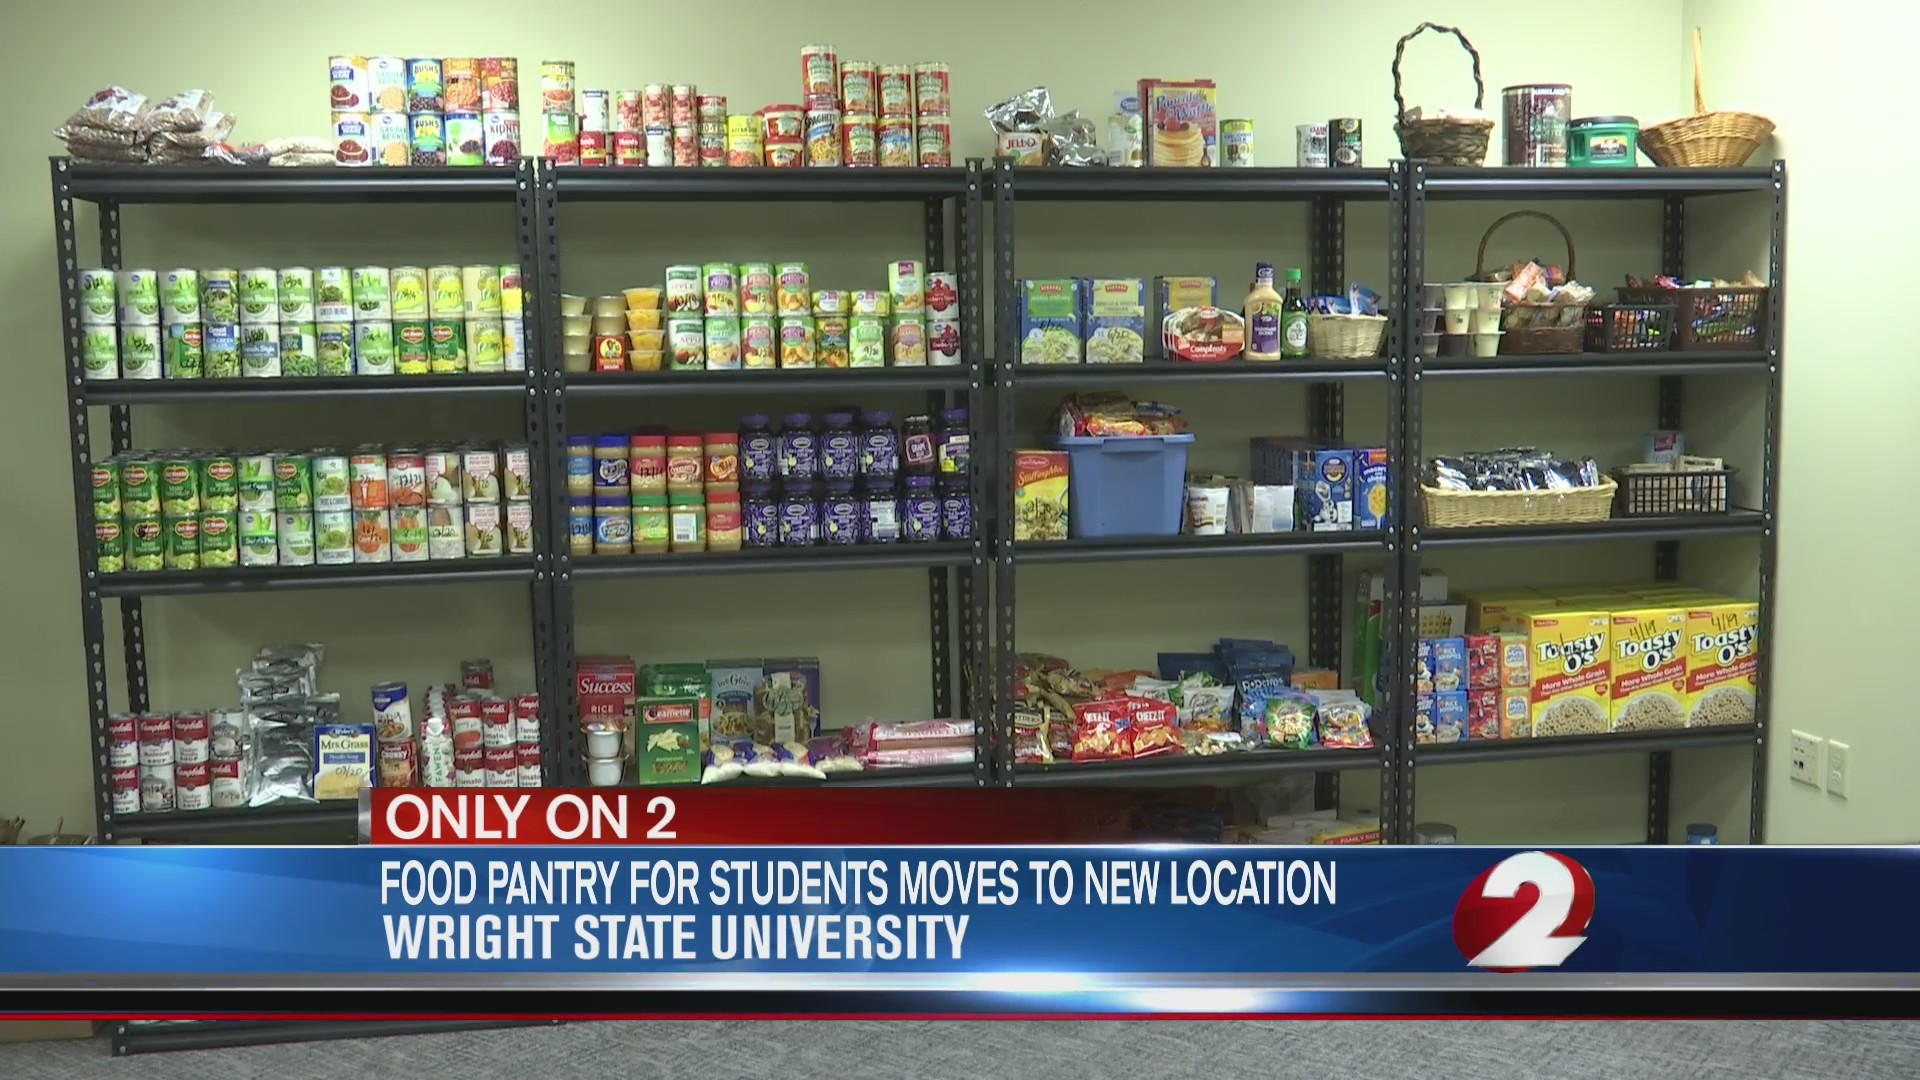 Food pantry for students moves to new location